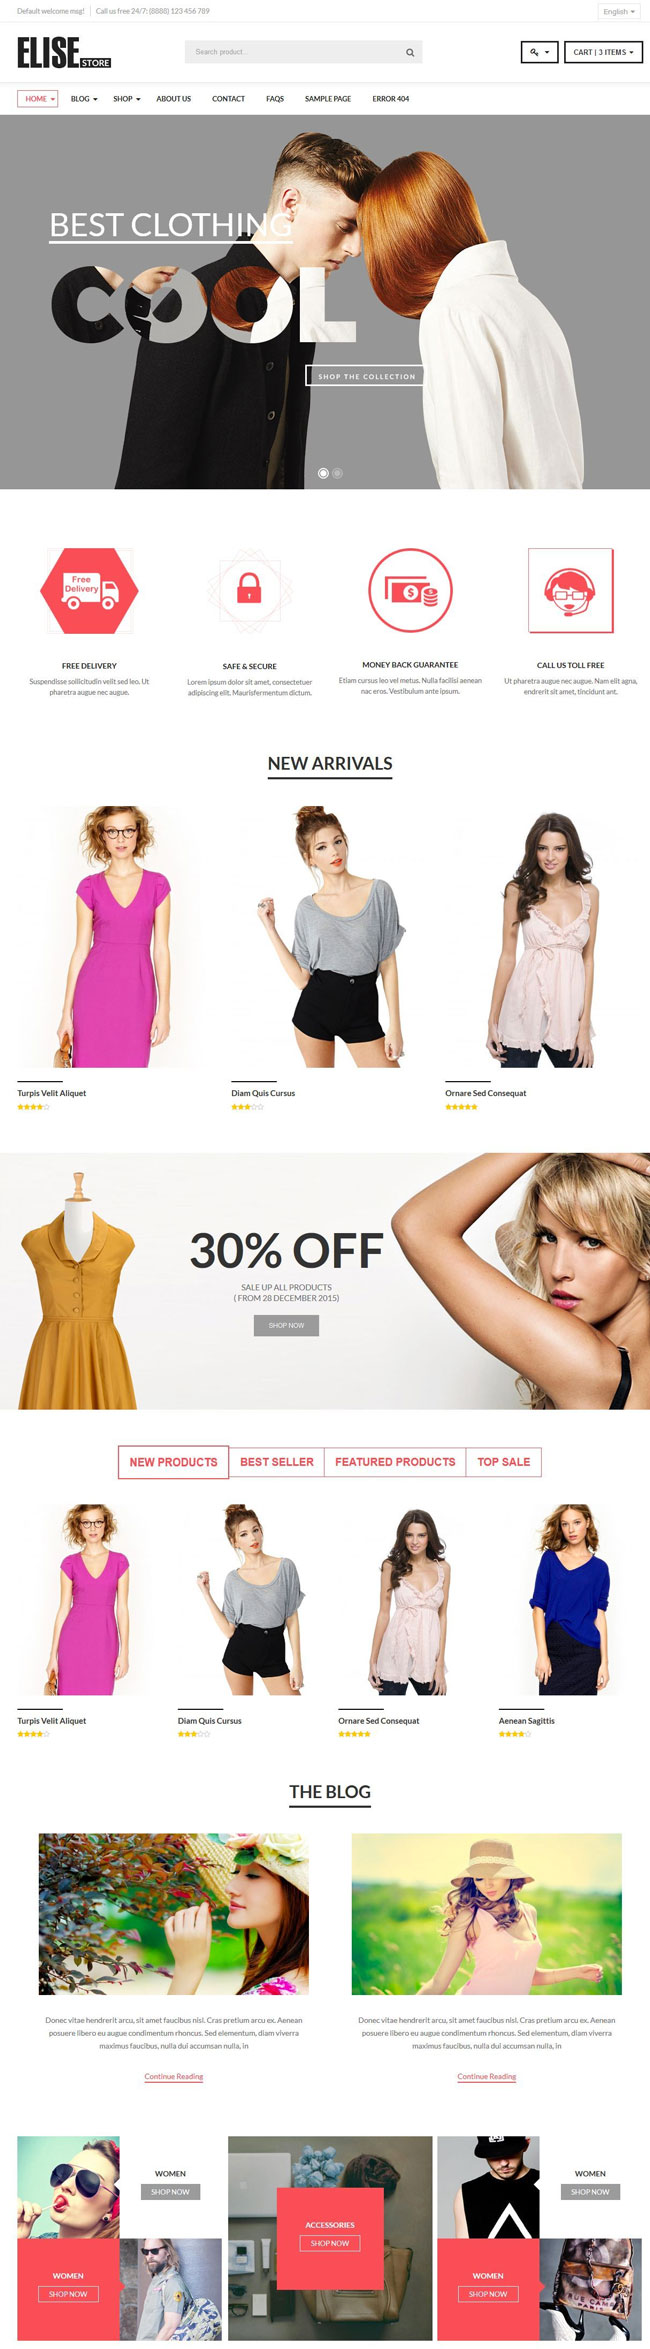 Elise-Fashion-WooCommerce-WordPress-Theme